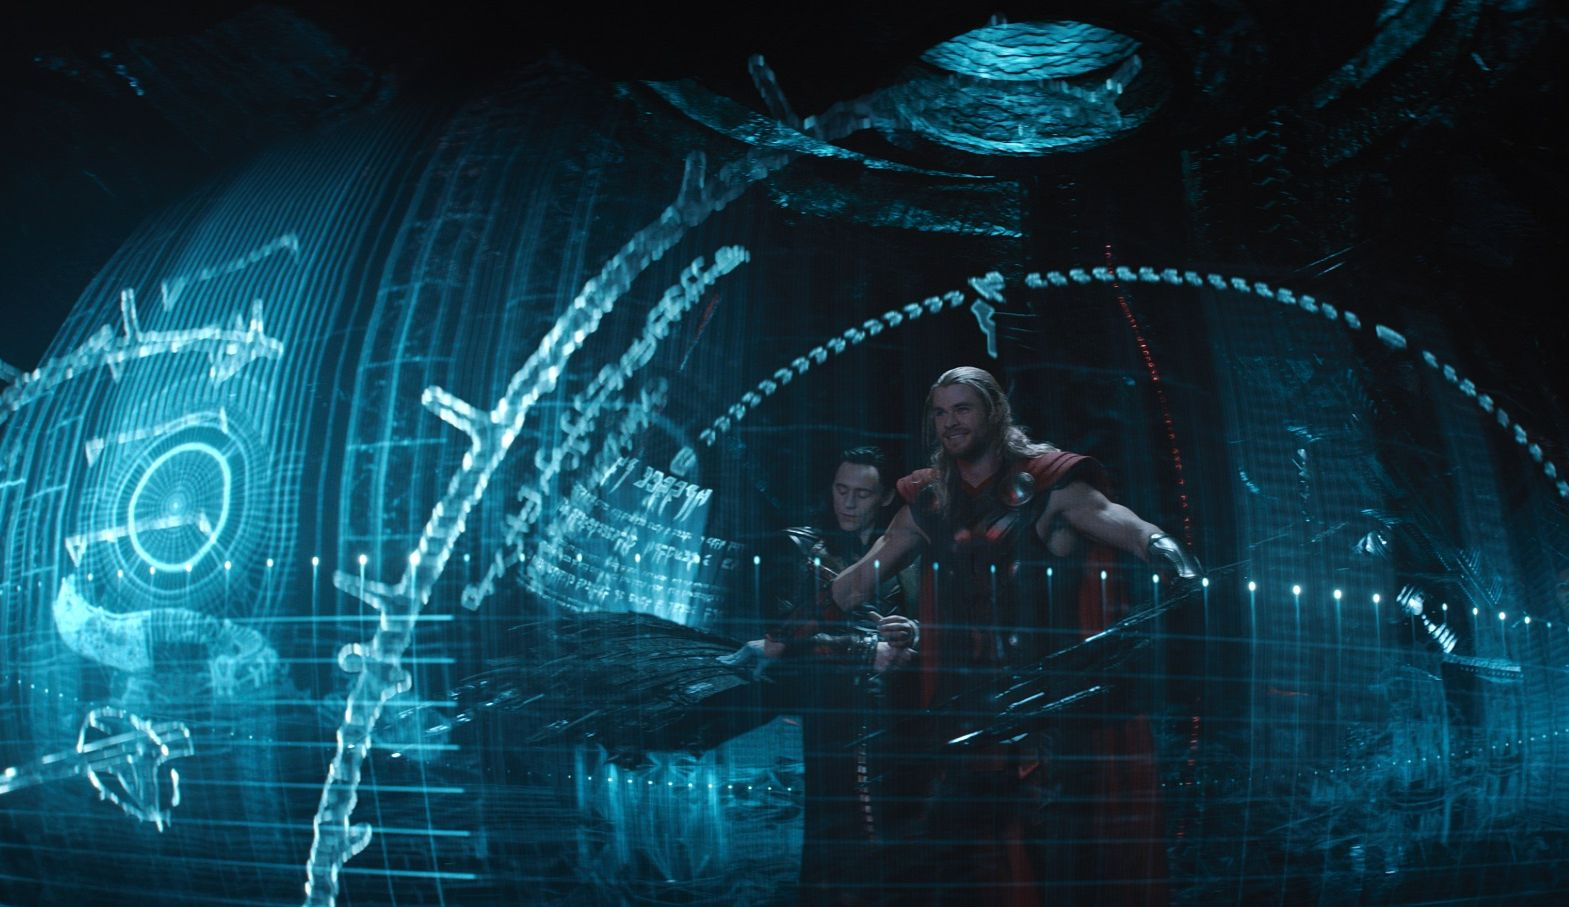 Thor and Loki fly around in futuristic blue ship thingy